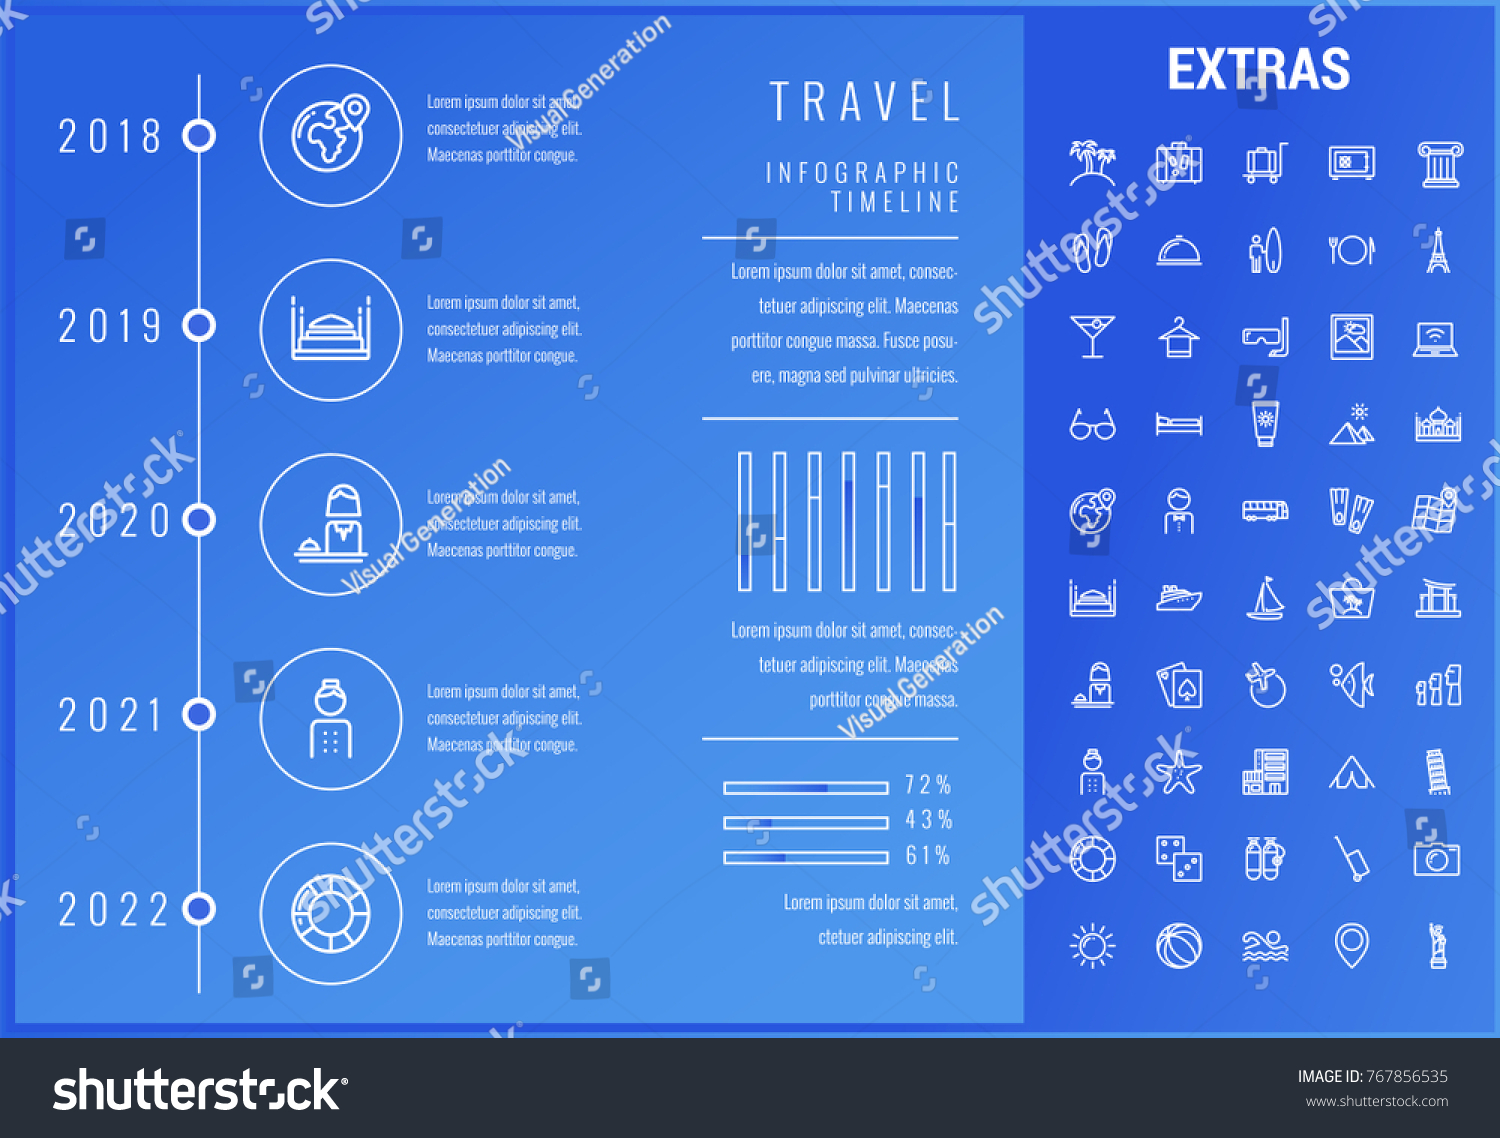 travel timeline template